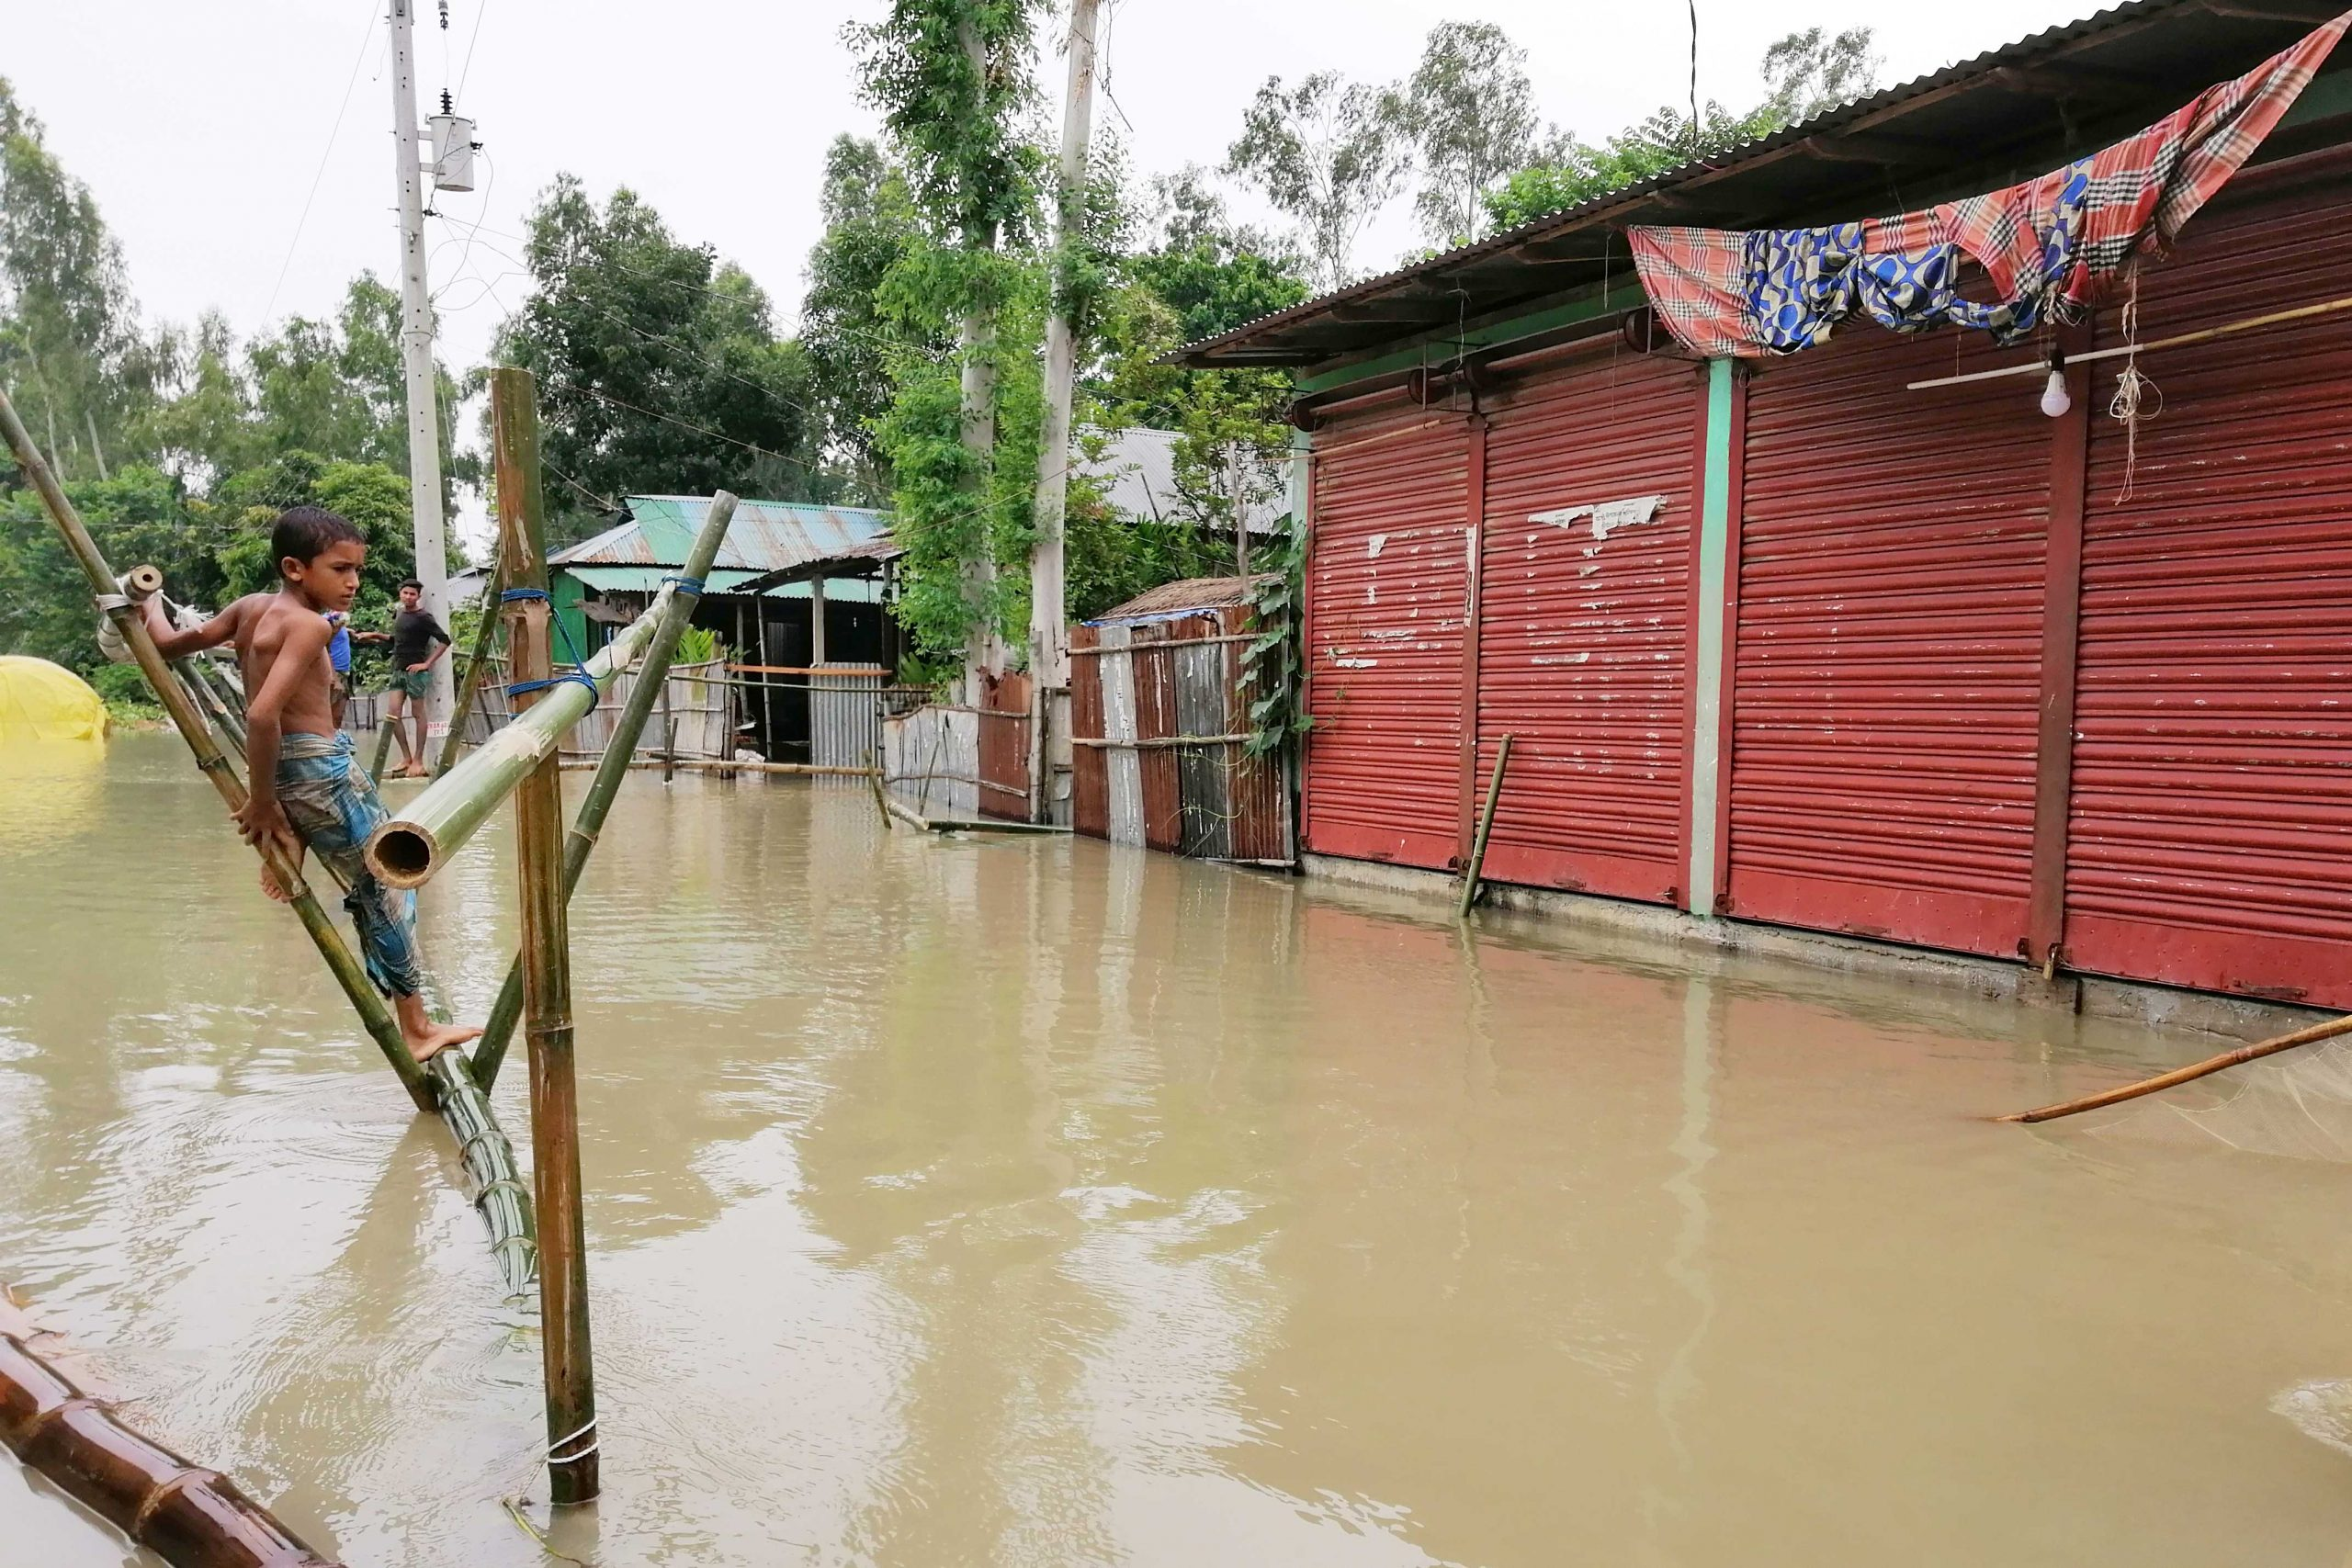 A quarter of Bangladesh is flooded. Millions have lost everything.